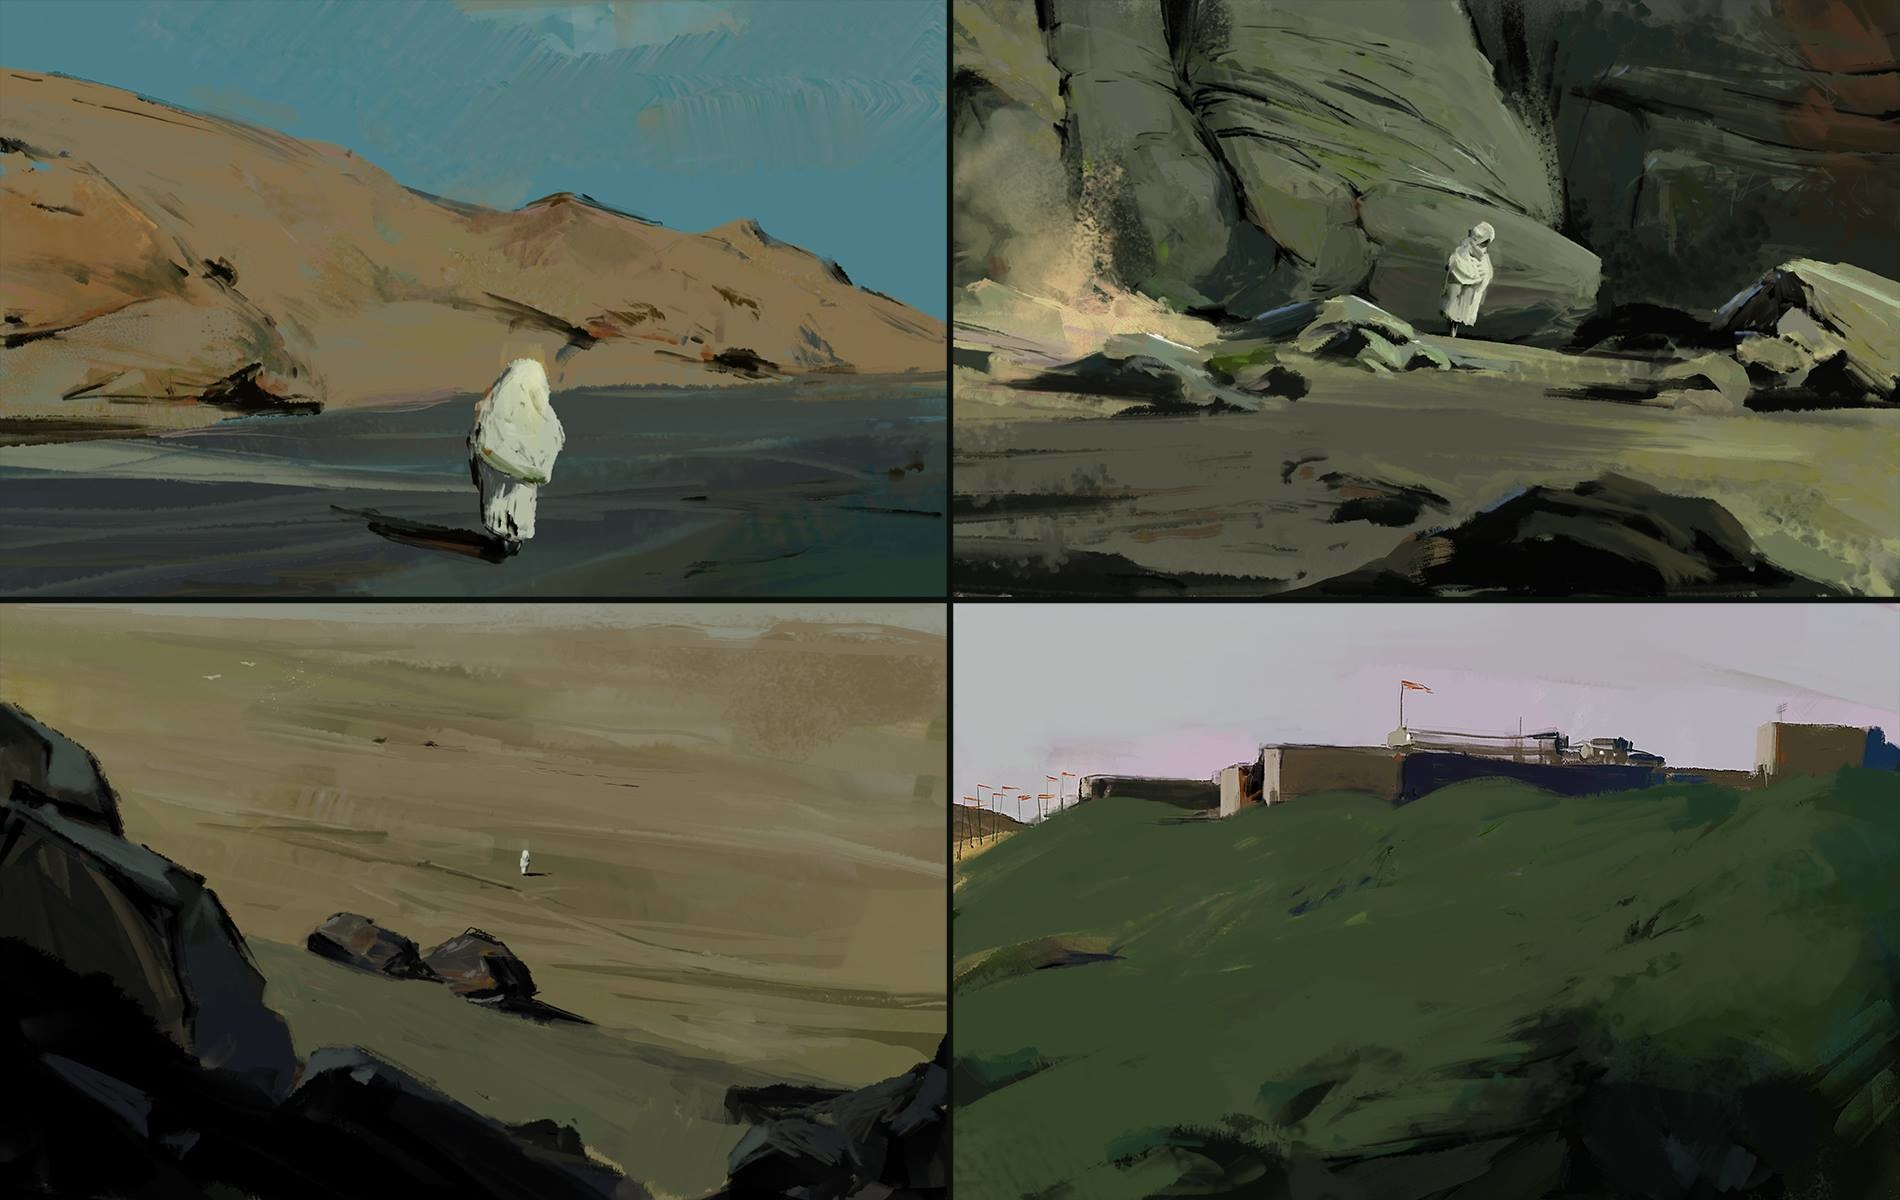 Ahmed rawi the white traveler sketches